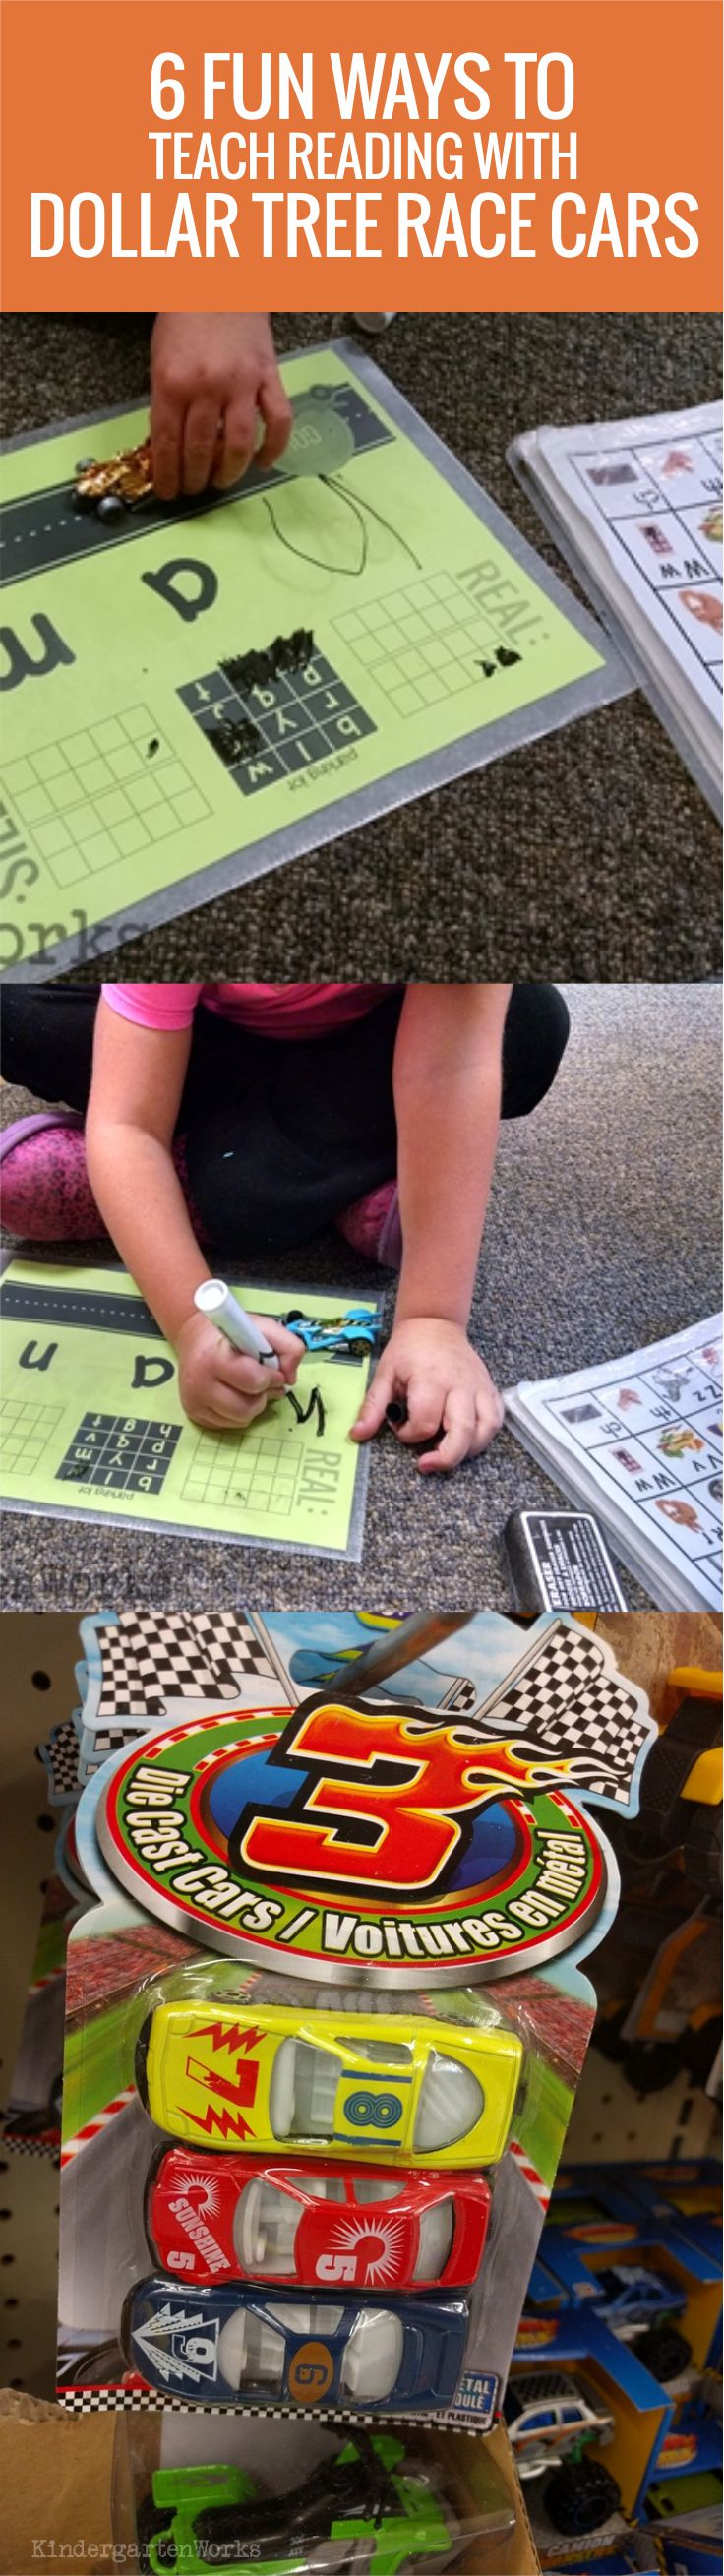 6 Fun Ways to Teach Reading With Dollar Tree Race Cars in Kindergarten - Oh my word, I LOVE these and they are super easy to do!